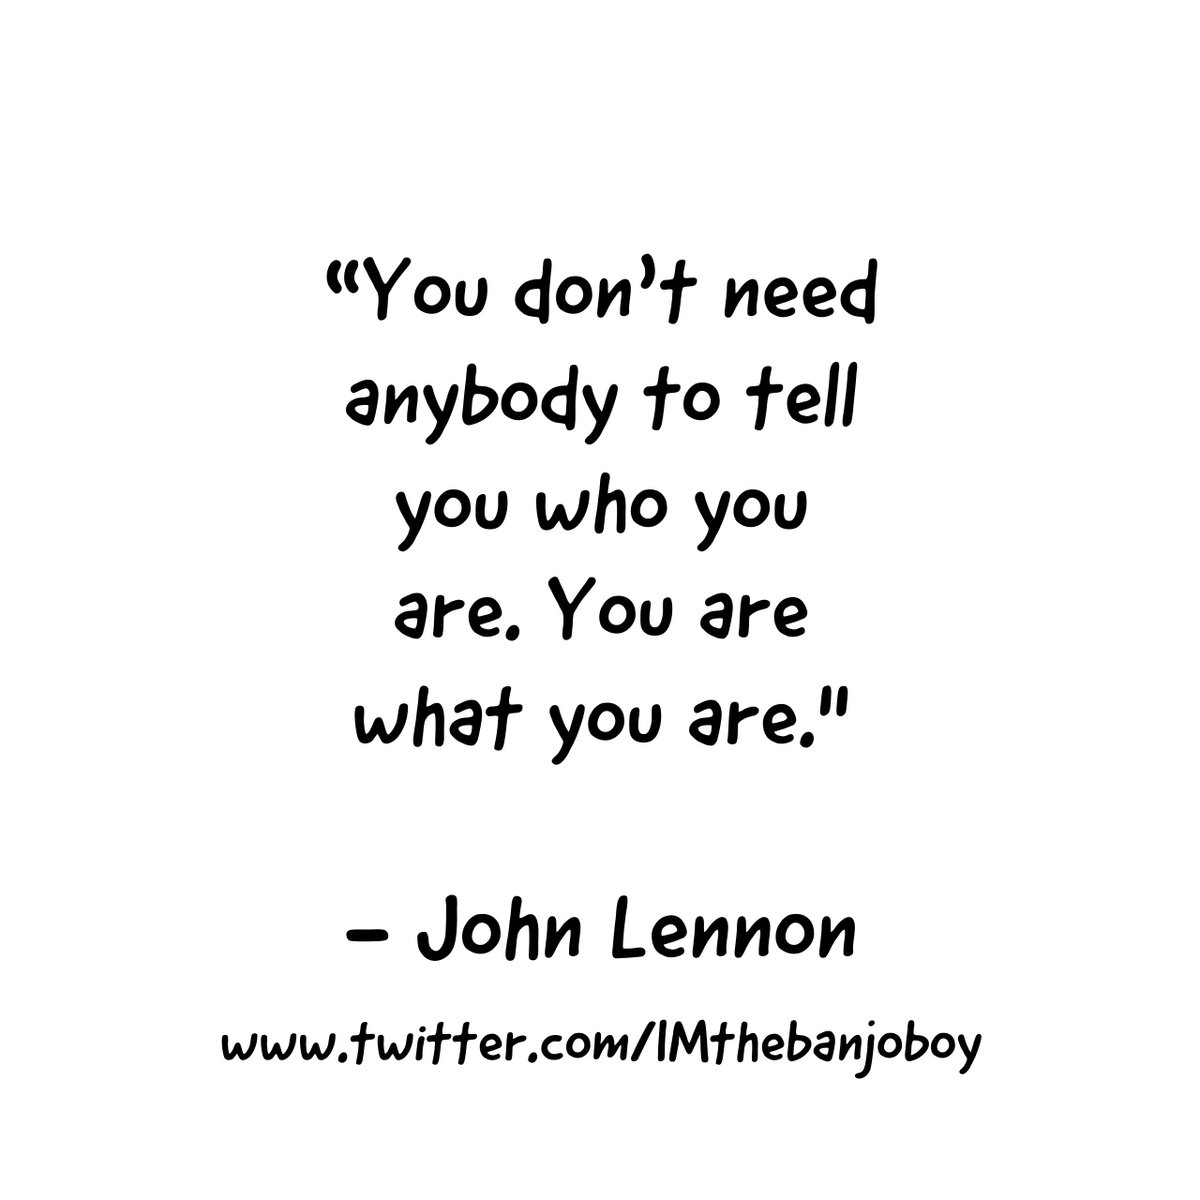 """""""You don't need anyone to tell you who you are,,,""""  #JohnLennon  https://www.youtube.com/watch?v=M0ciSbU--Jw…  #Learning  #Identity #MoreLearning  #You  #Awareness  #InnerPeace  #Knowledge  #SelfKnowledge  #Intuition  #SelfReliance  #Individuals  #SelfHelp  #SelfImprovement #Us  #Quotes  #MoreQuotes"""